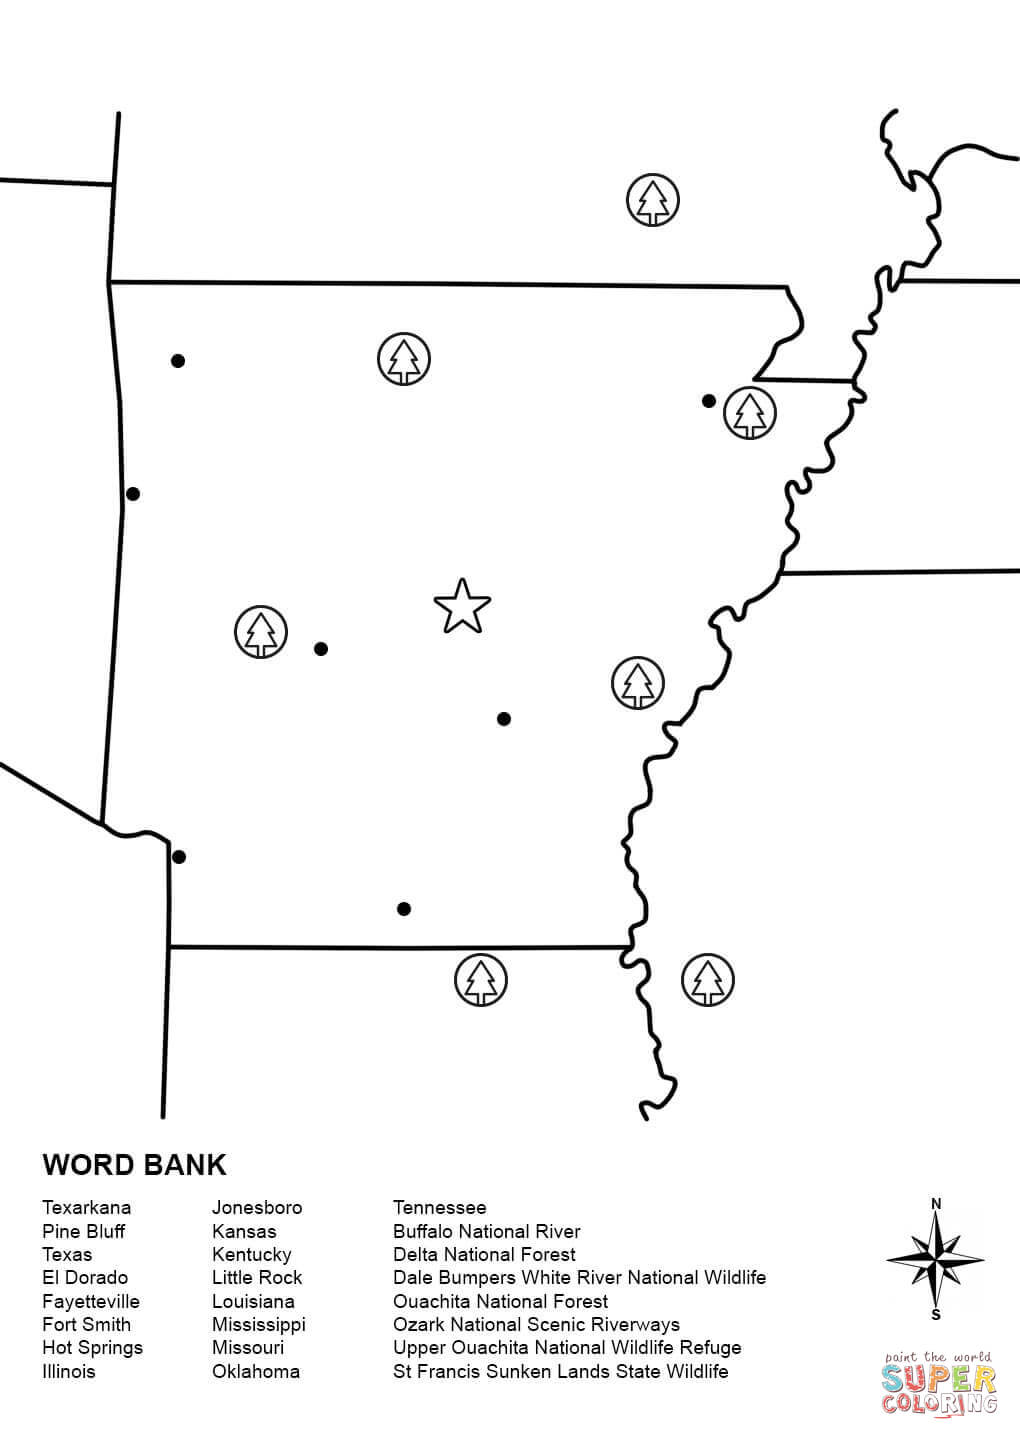 arkansas coloring pages 17 best images about arkansas on pinterest football arkansas pages coloring